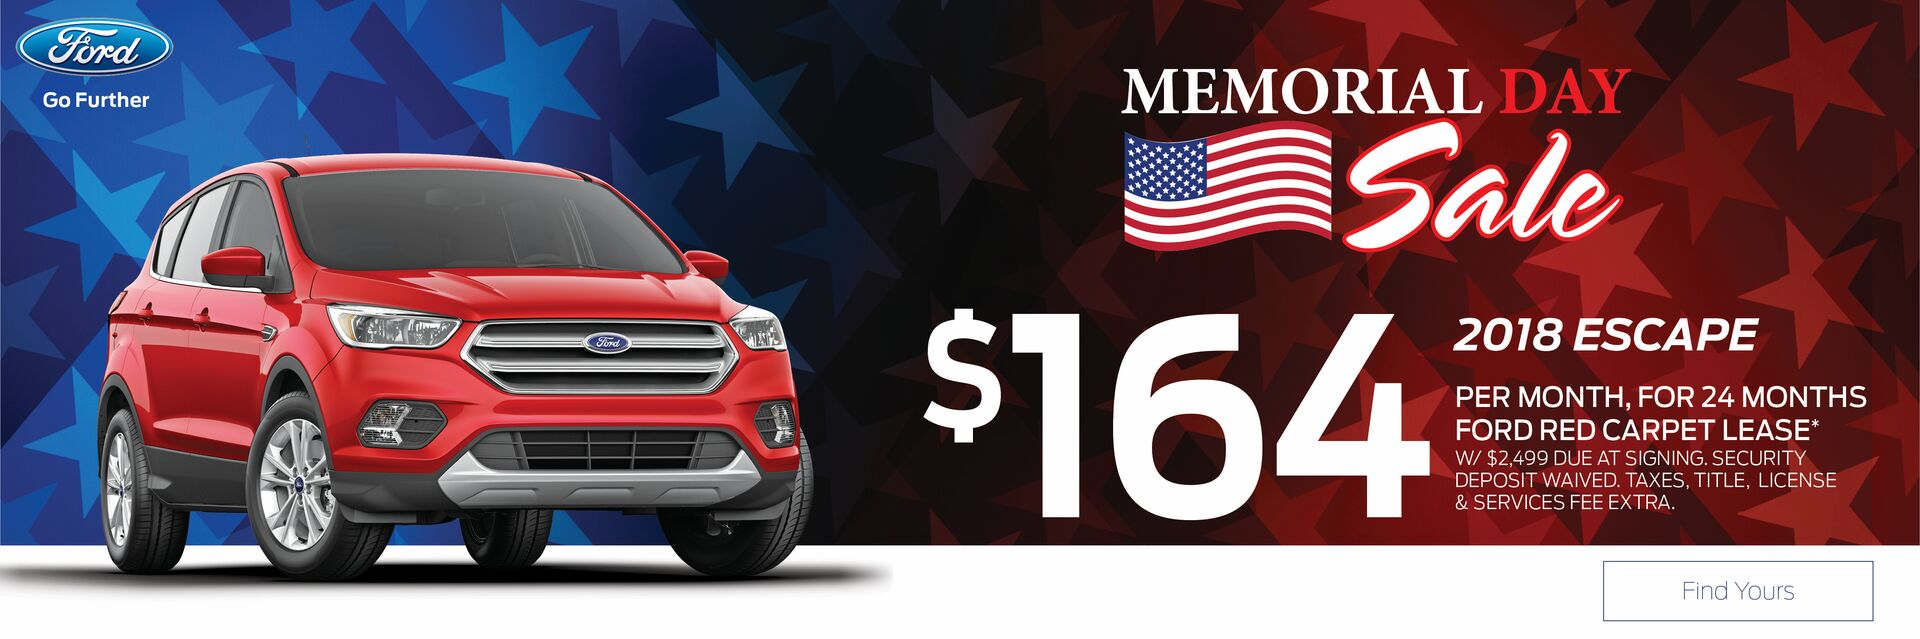 Lease a Ford Escape at Holiday Ford in Fond du Lac, WI